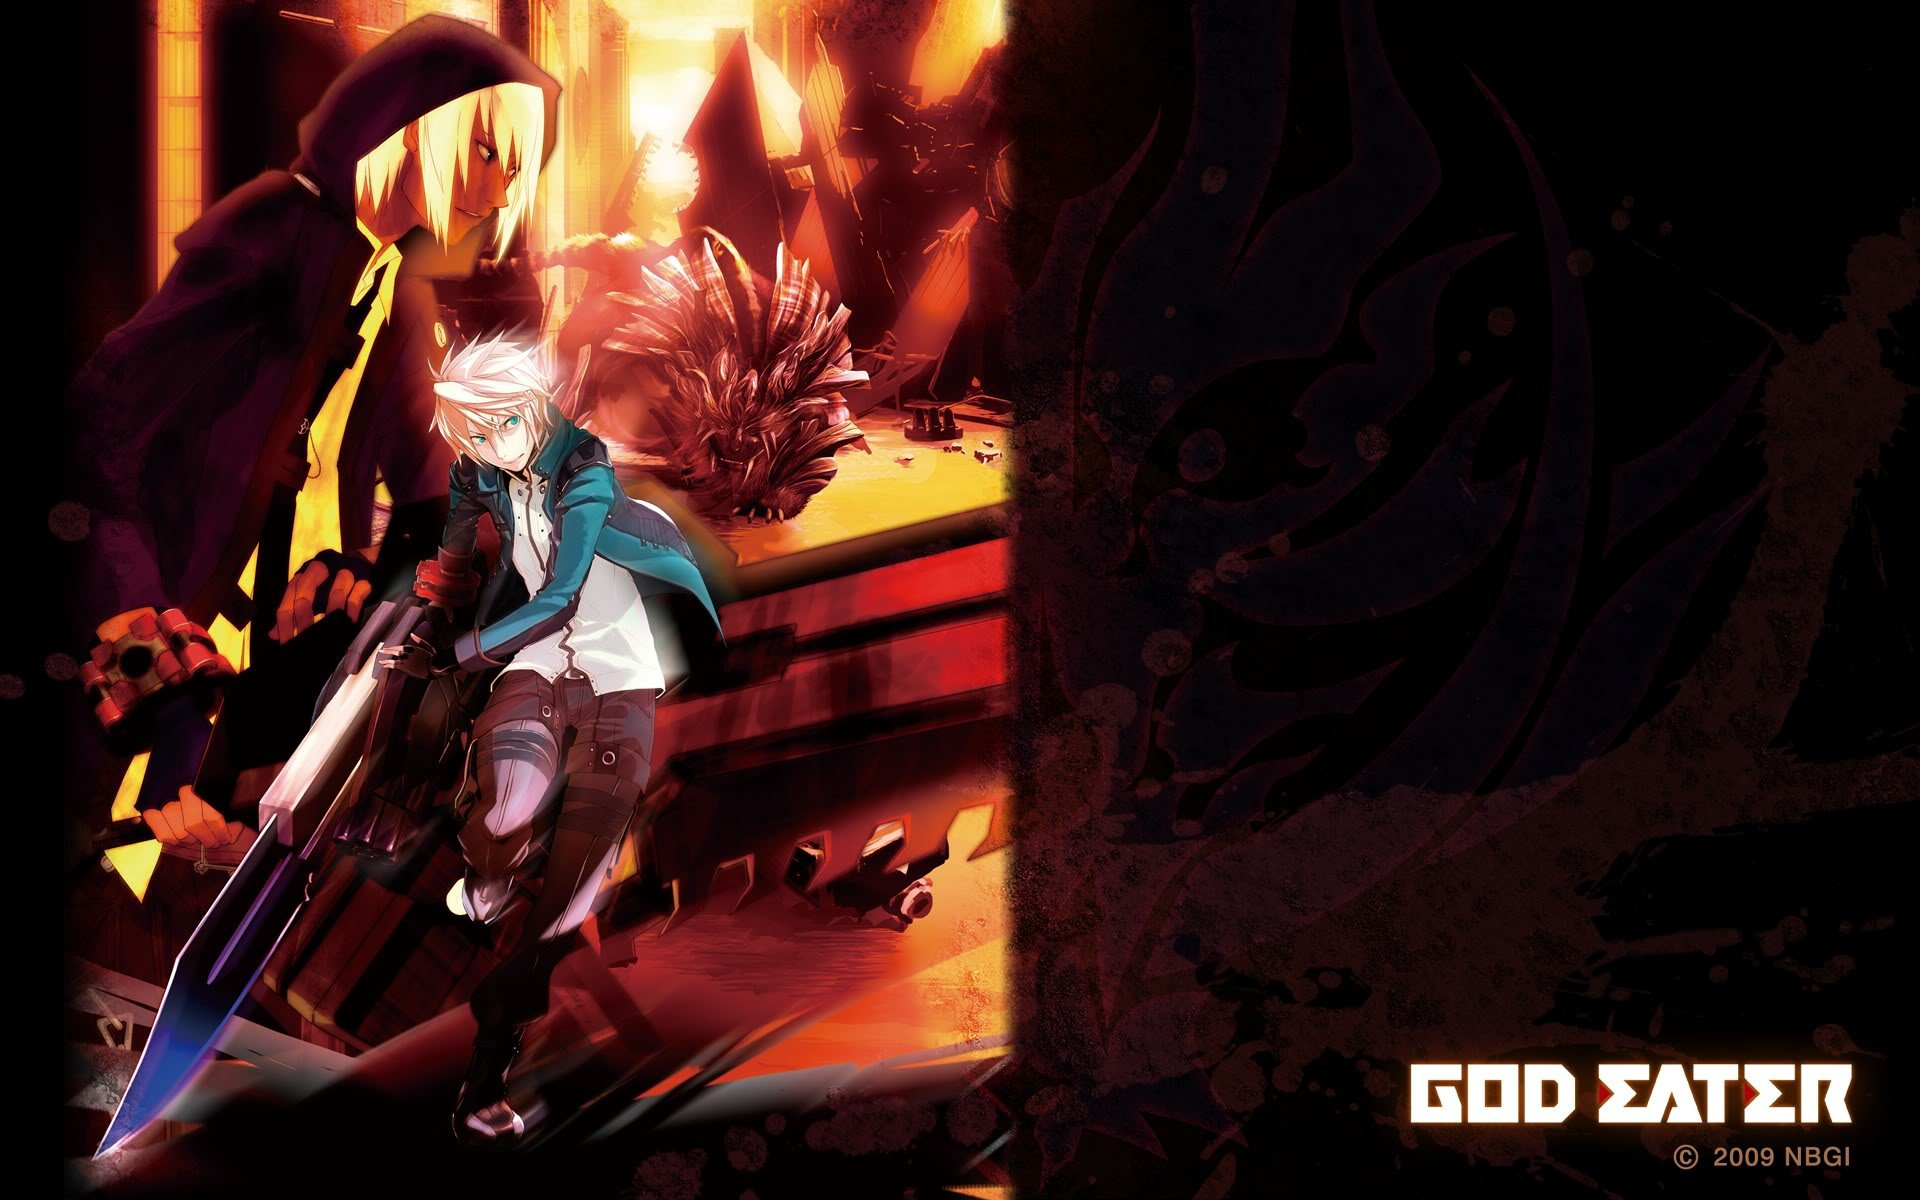 Download hd 1920x1200 God Eater PC background ID:409589 for free